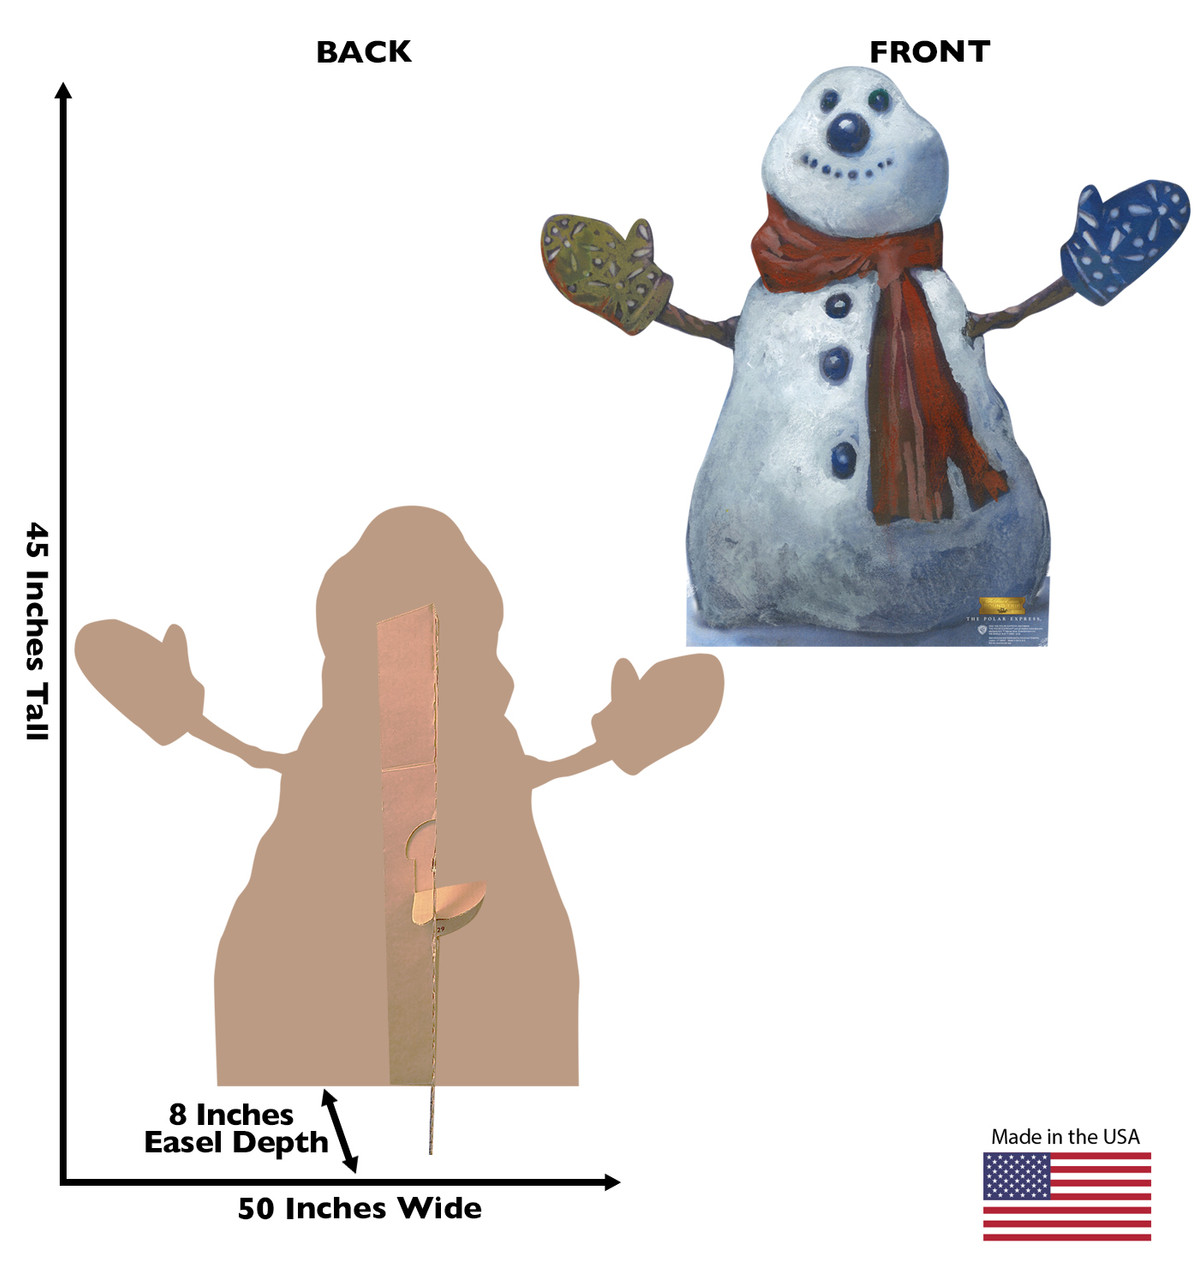 Life-size cardboard standee of the Polar Express Snowman from The Polar Express. Back and front with dimensions.